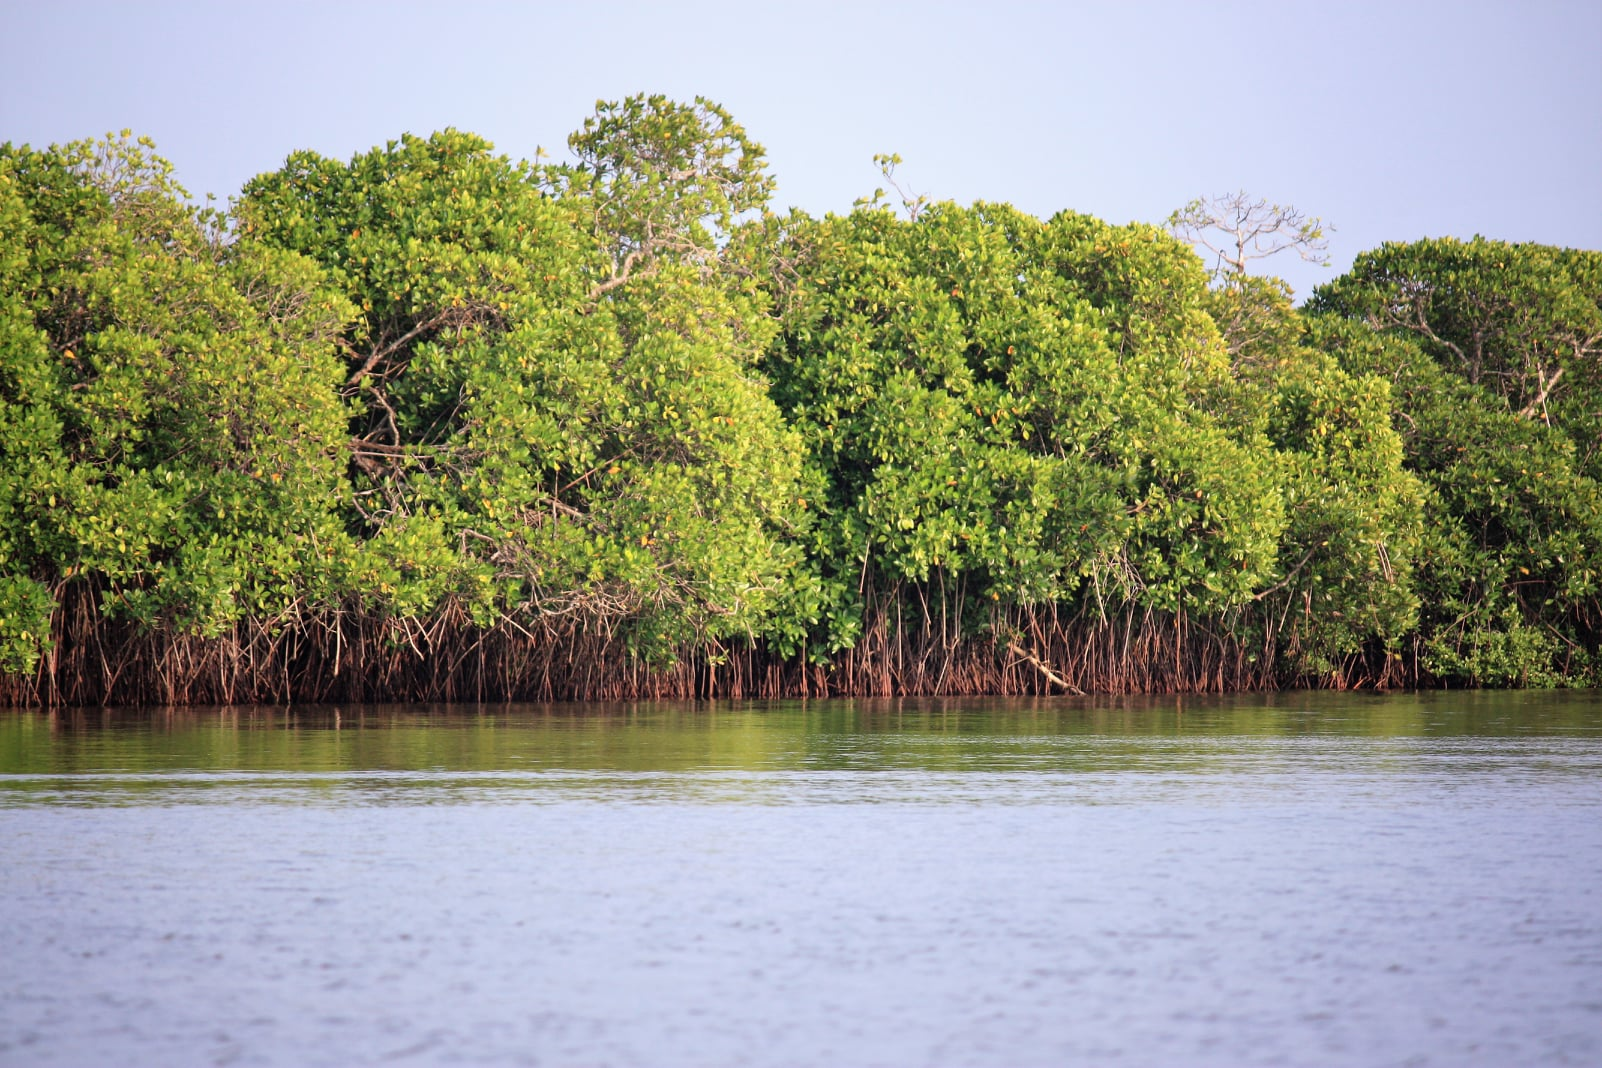 Eco Tourism at Pichavaram Mangrove Forest in Tamil Nadu - i Share